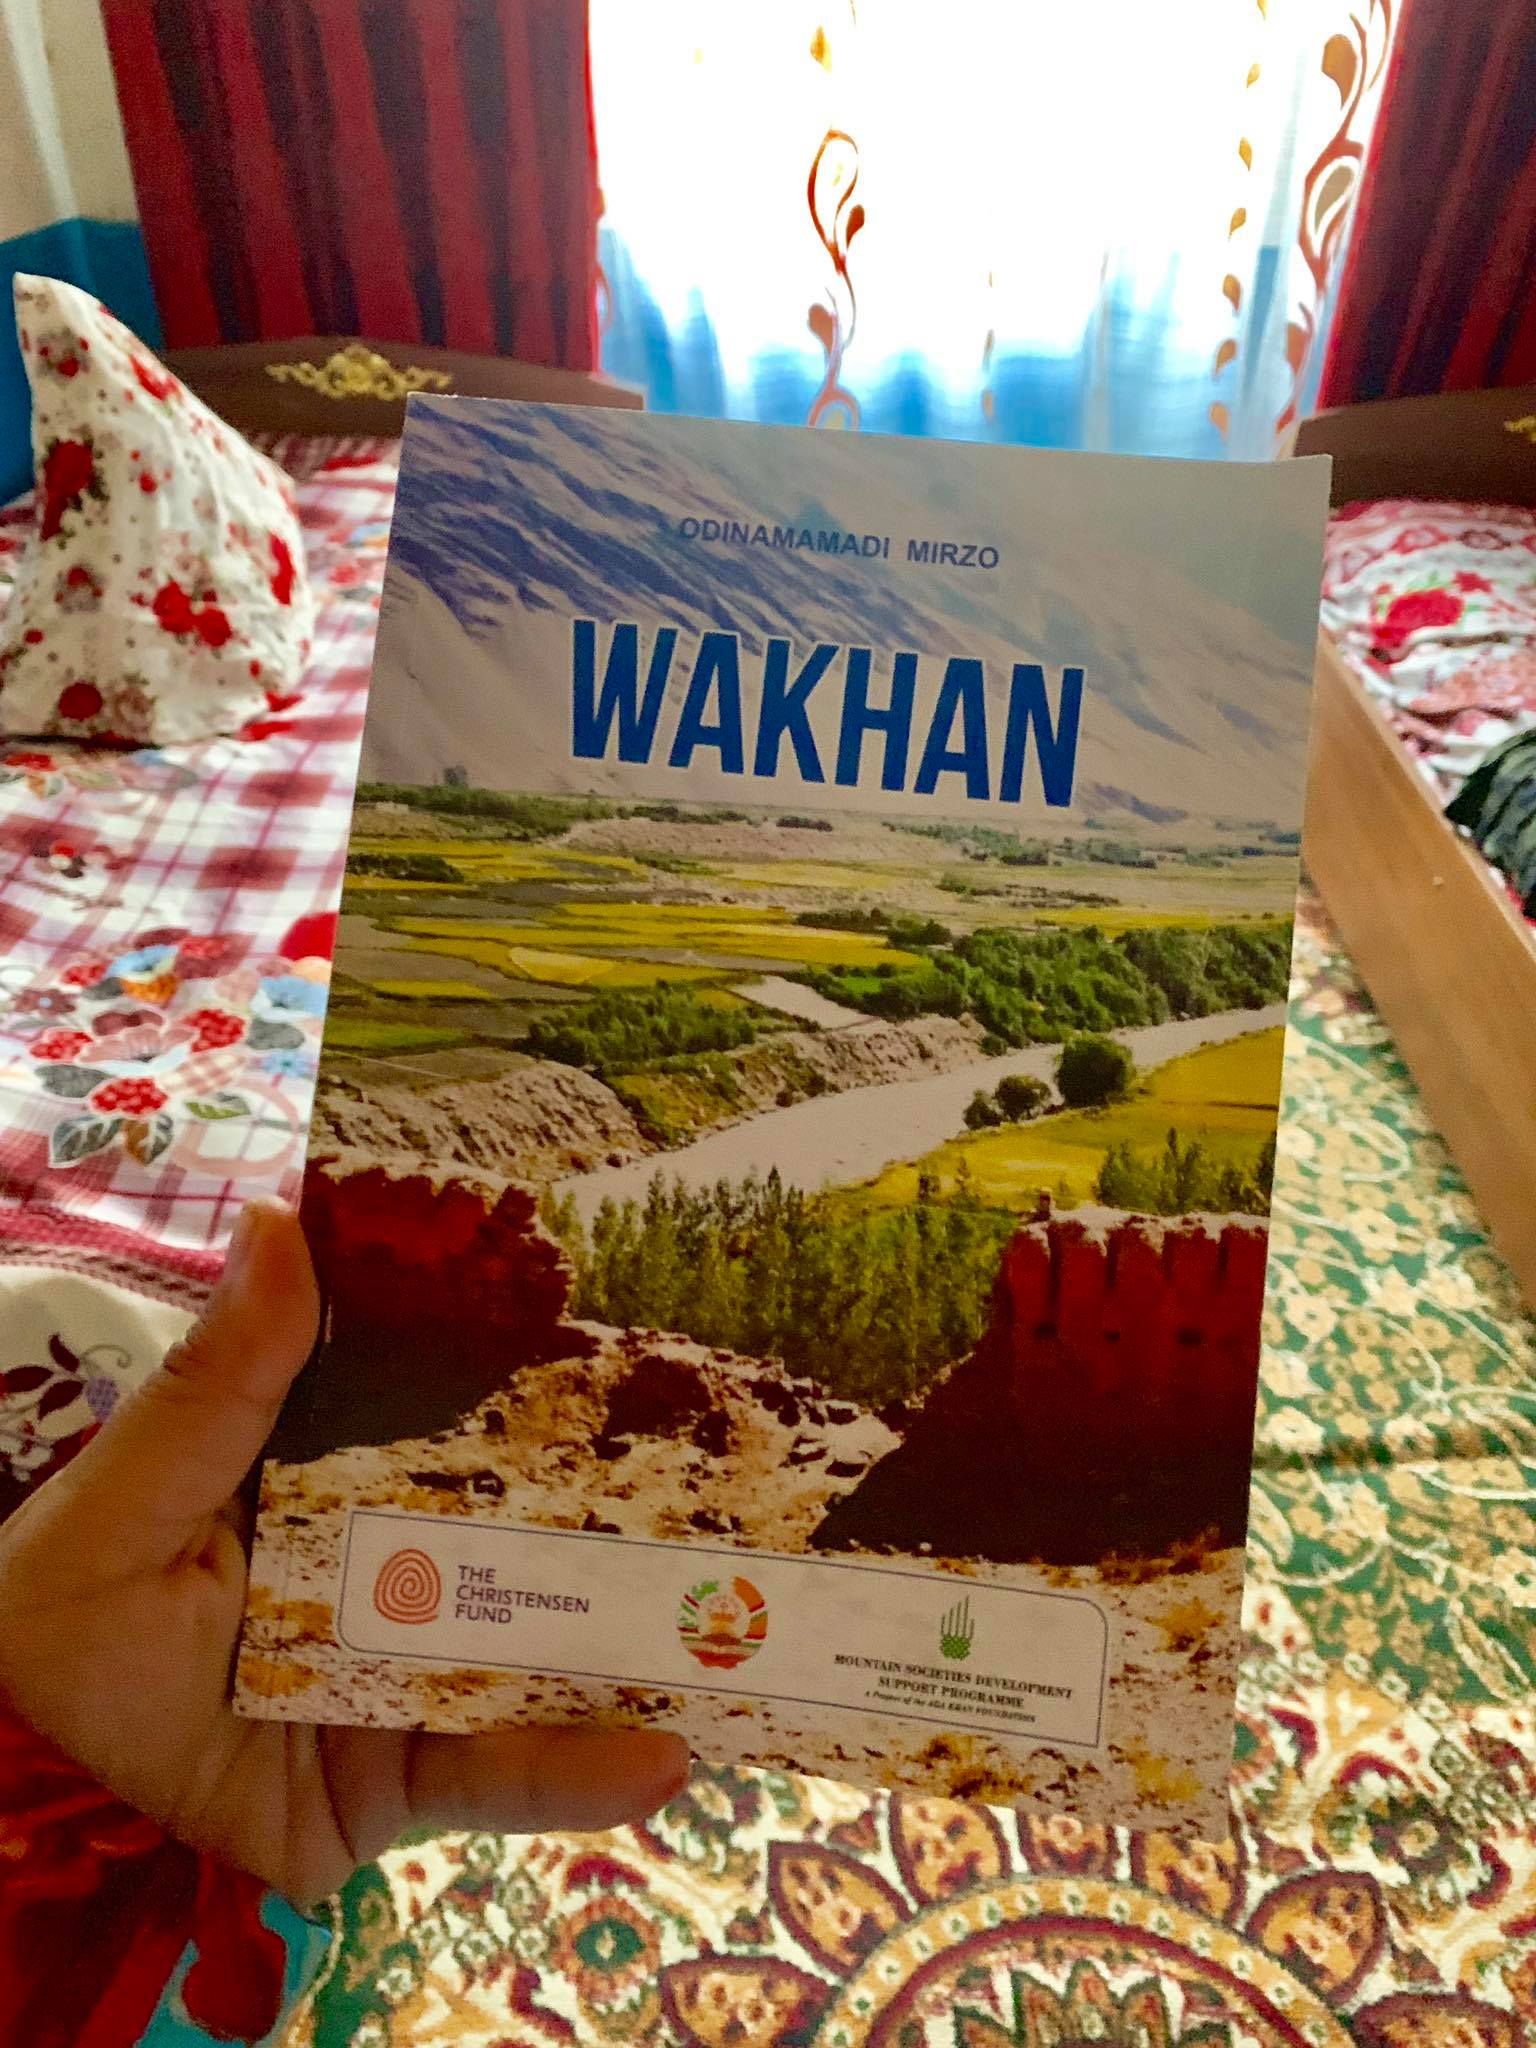 Kach Solo Travels in 2019 Driving from Ishkashim to Wakhan Valley33.jpg